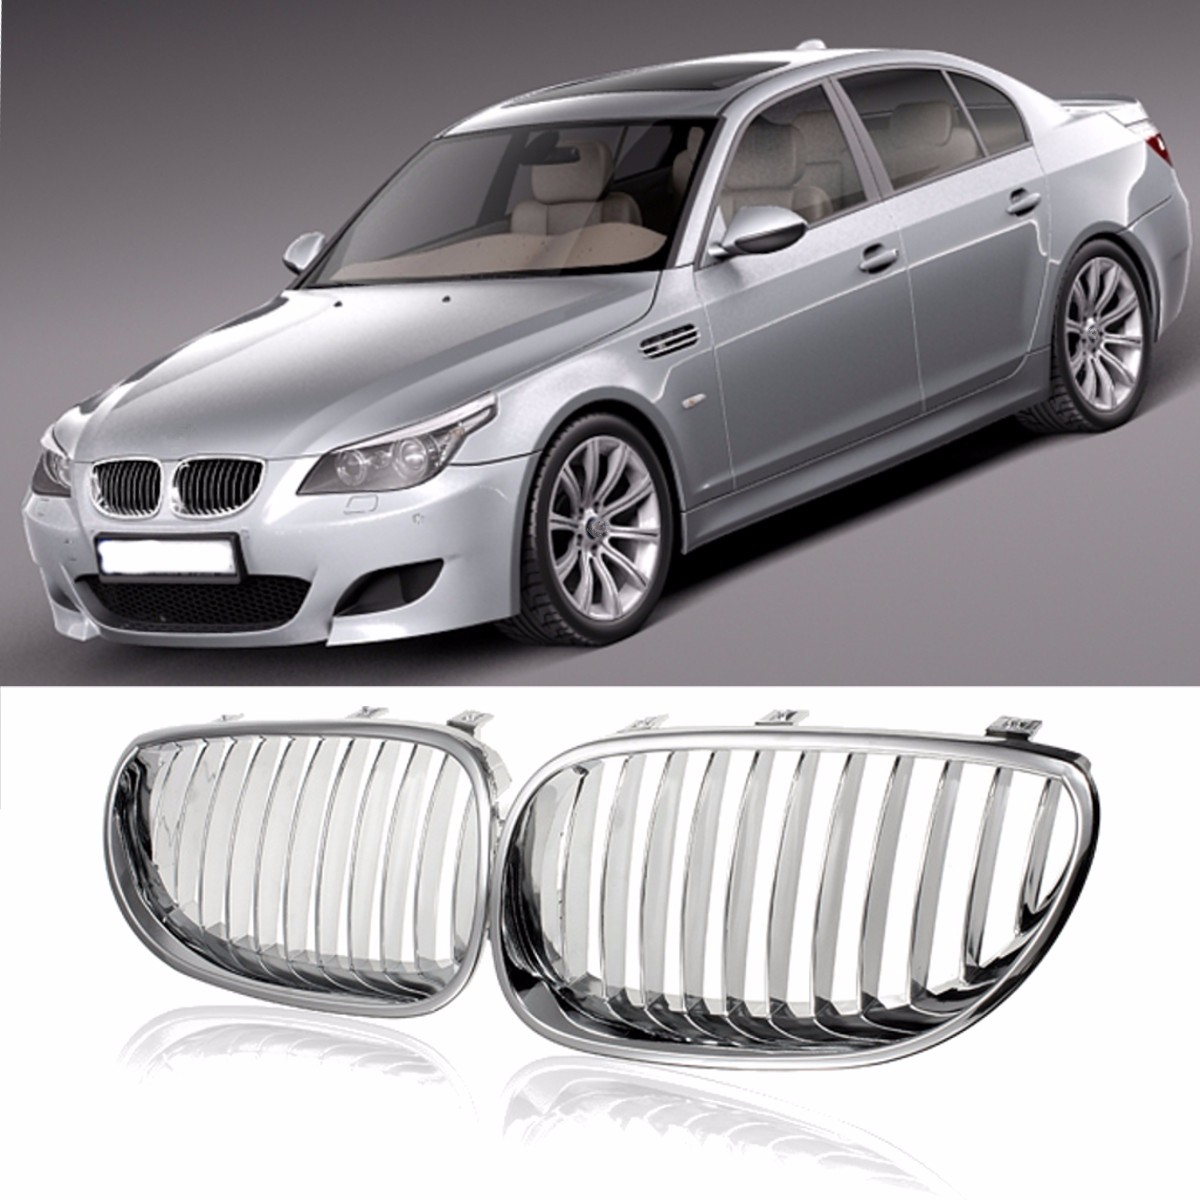 for BMW E60 E61 M5 2003 2004 2005 2006 2007 2008 2009 Chrome Silver Car Auto Front Wide Kidney Hood Grill Grille for chrysler pacifica 2007 2008 halogen headlight excellent angel eyes ultra bright illumination ccfl angel eyes kit